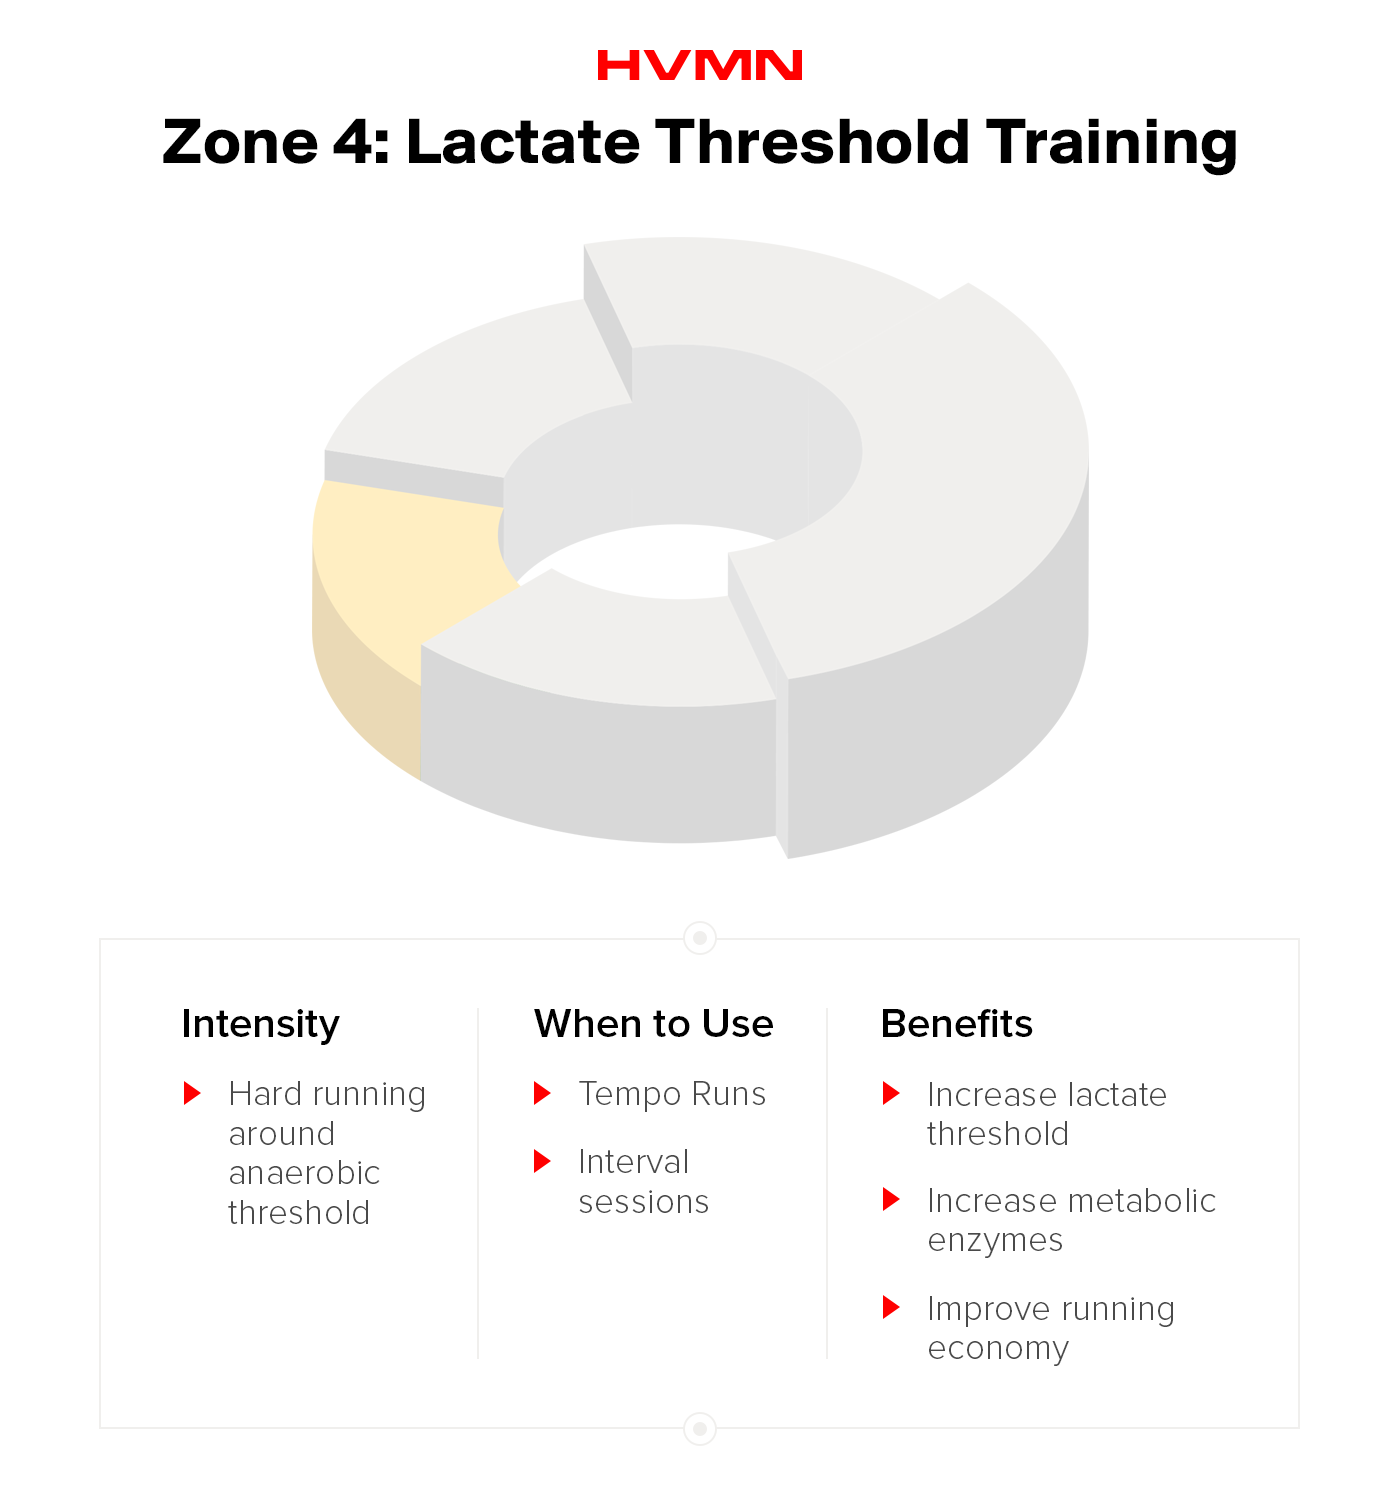 Zone 4: Lactate Threshold Training